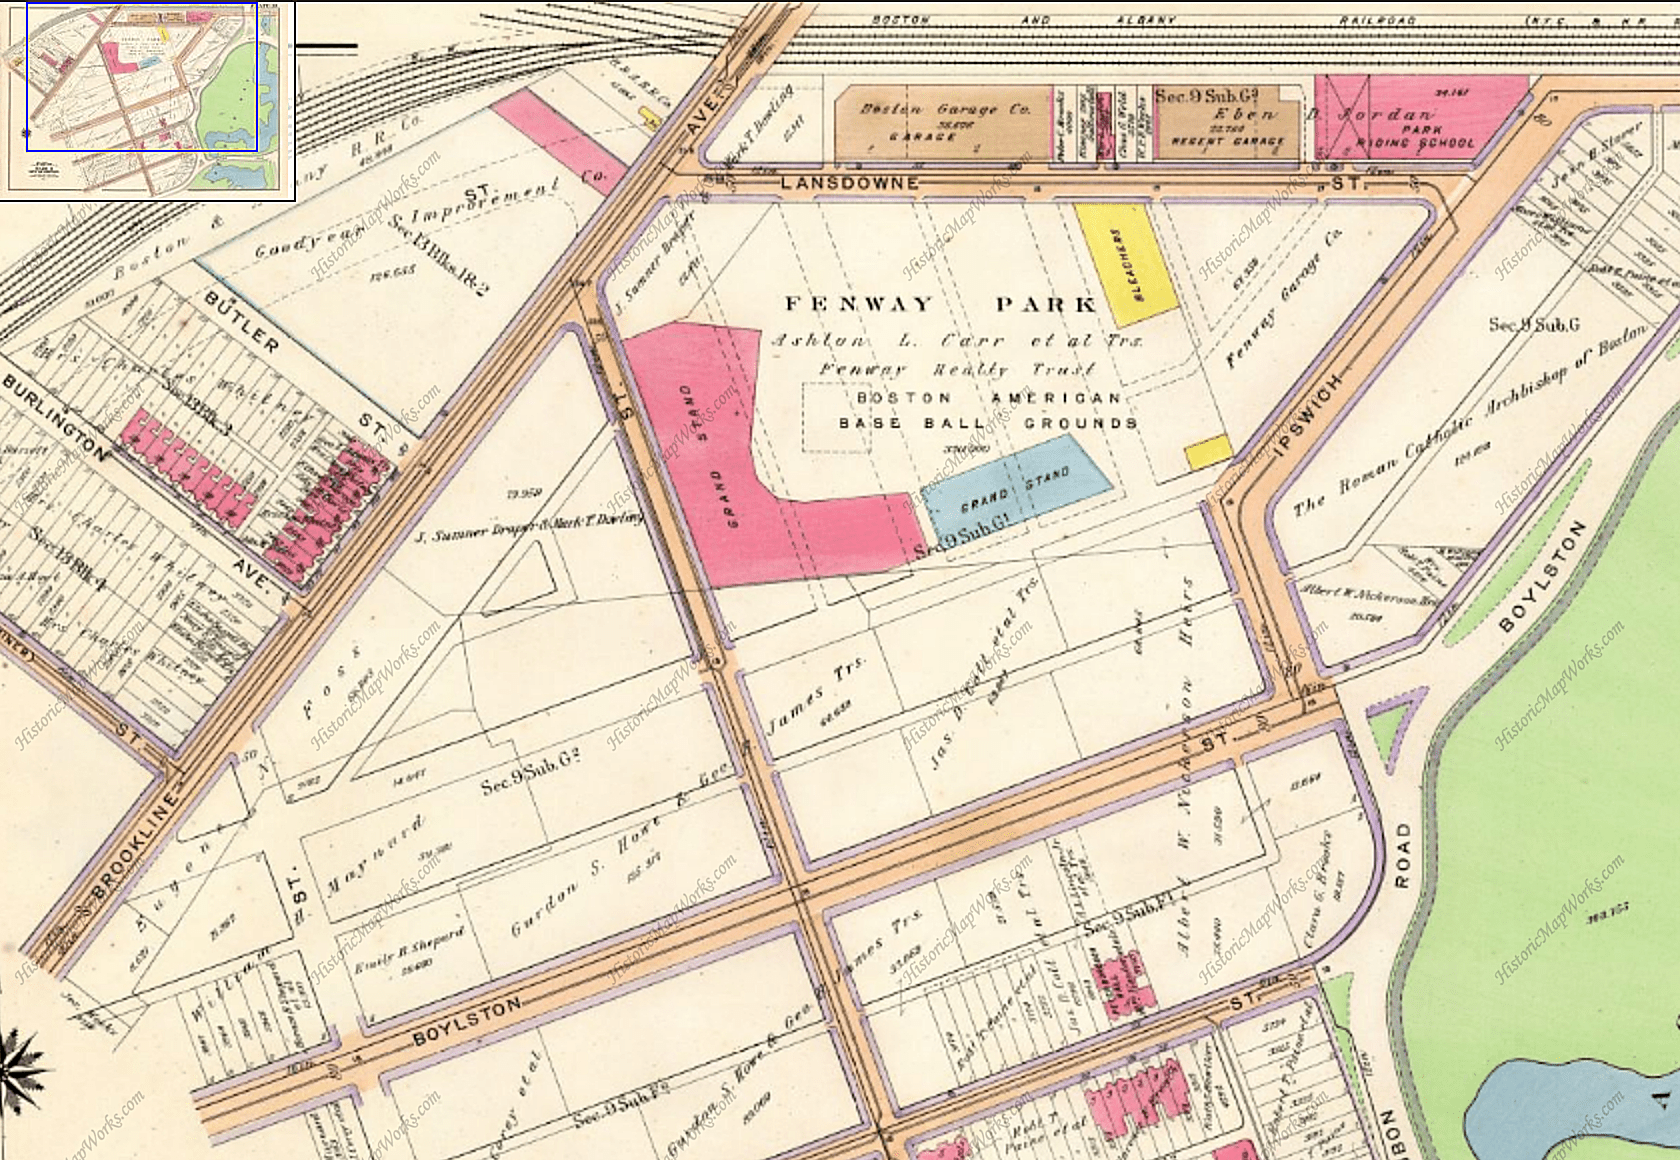 1912 view of the Fenway Park area of Boston, Massachusetts